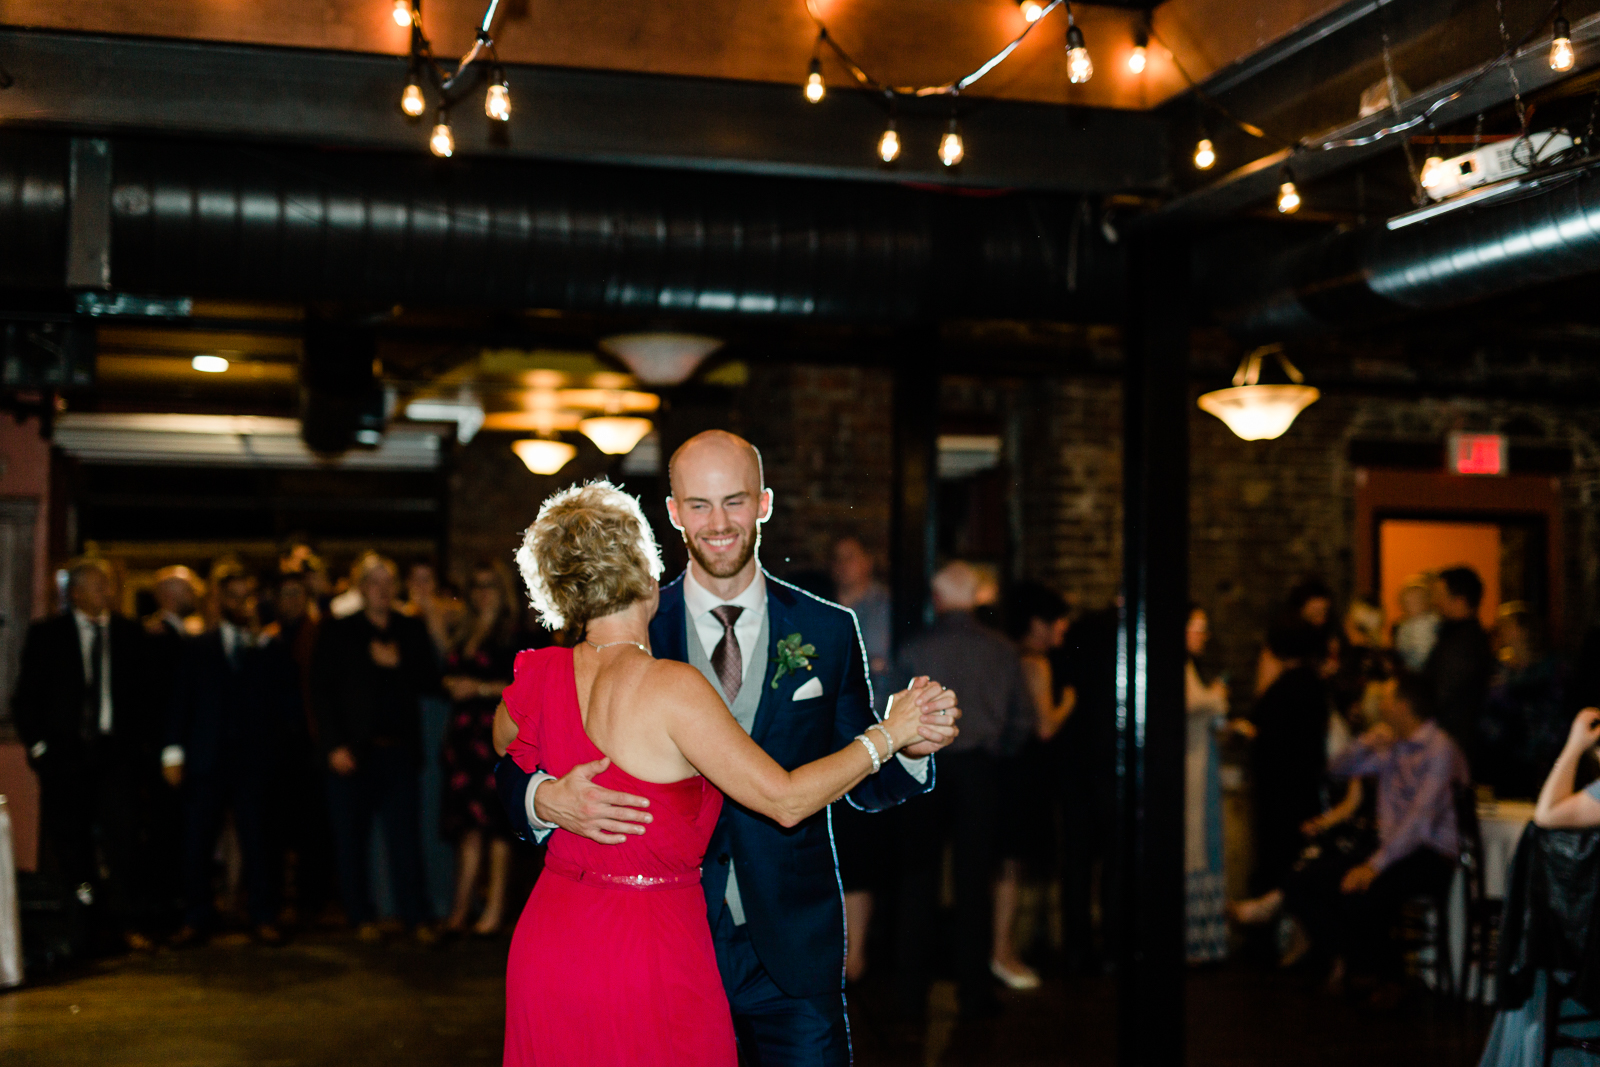 0125st-johns-wedding-photographer-caitlin-adam-yellowbelly.jpg